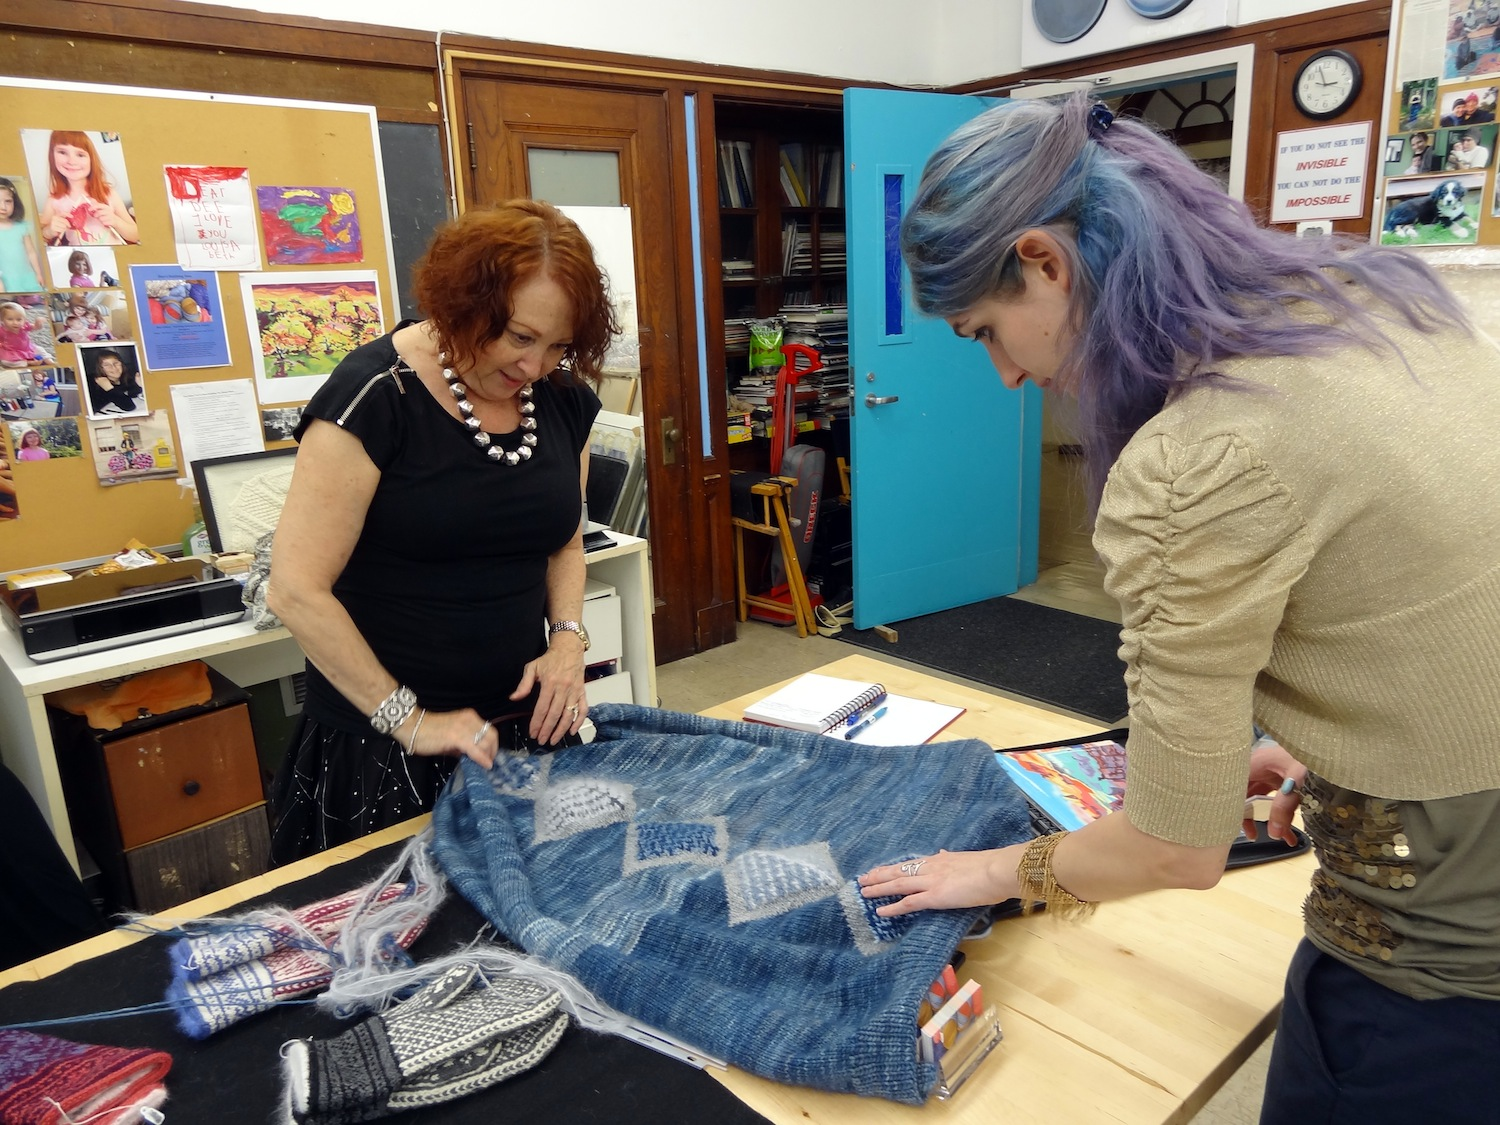 Dee Cohen shows intricate pattern in hand-knit shawl to Geena Matuson (@geenamatuson), 2014.